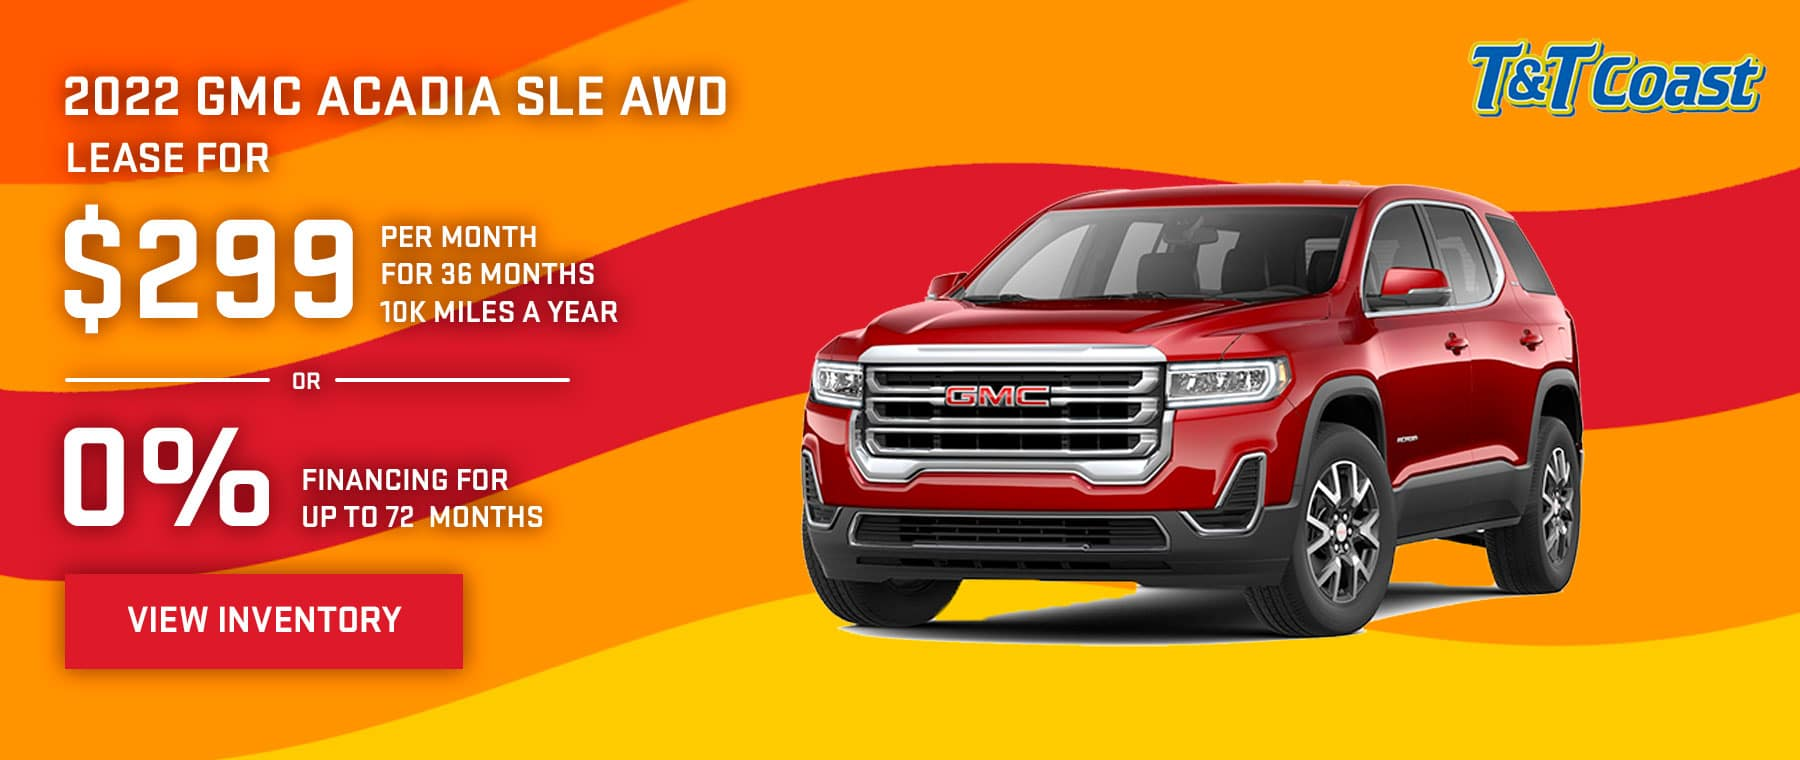 2022 GMC ACADIA SLE AWD $299 a month for 36 months OR 0% financing for up to 72 months